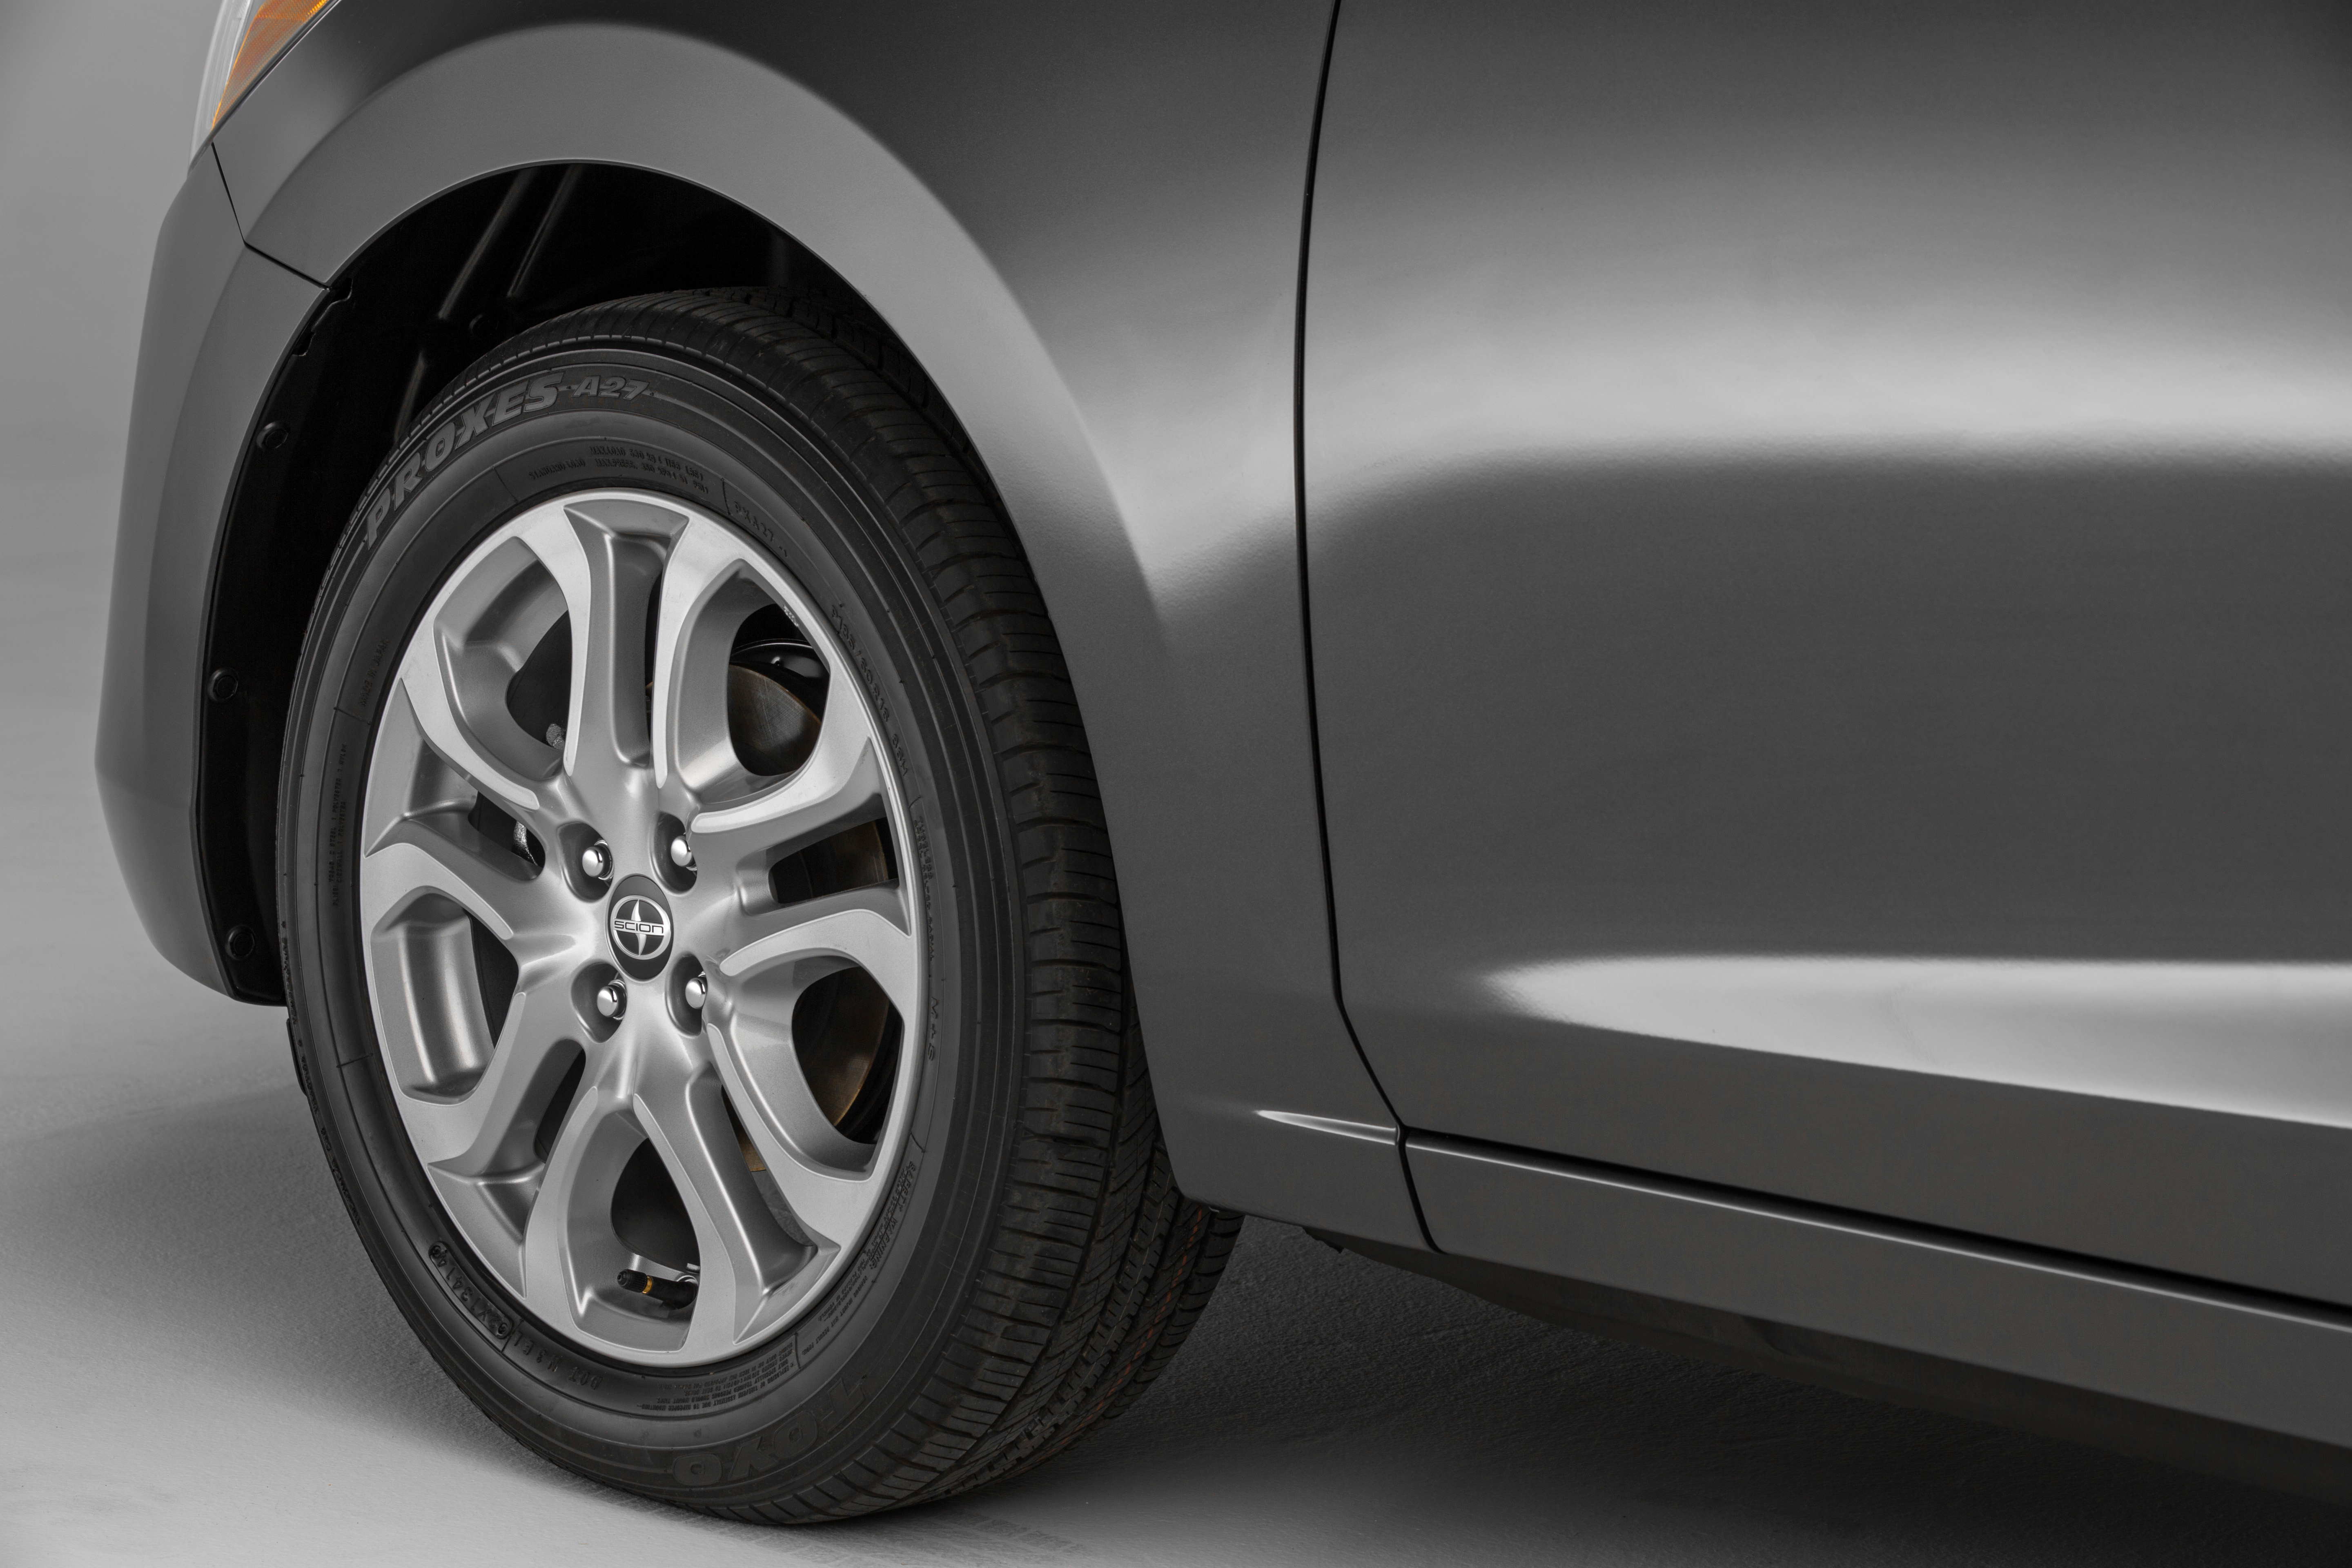 New Scion models feature Toyo OE tires